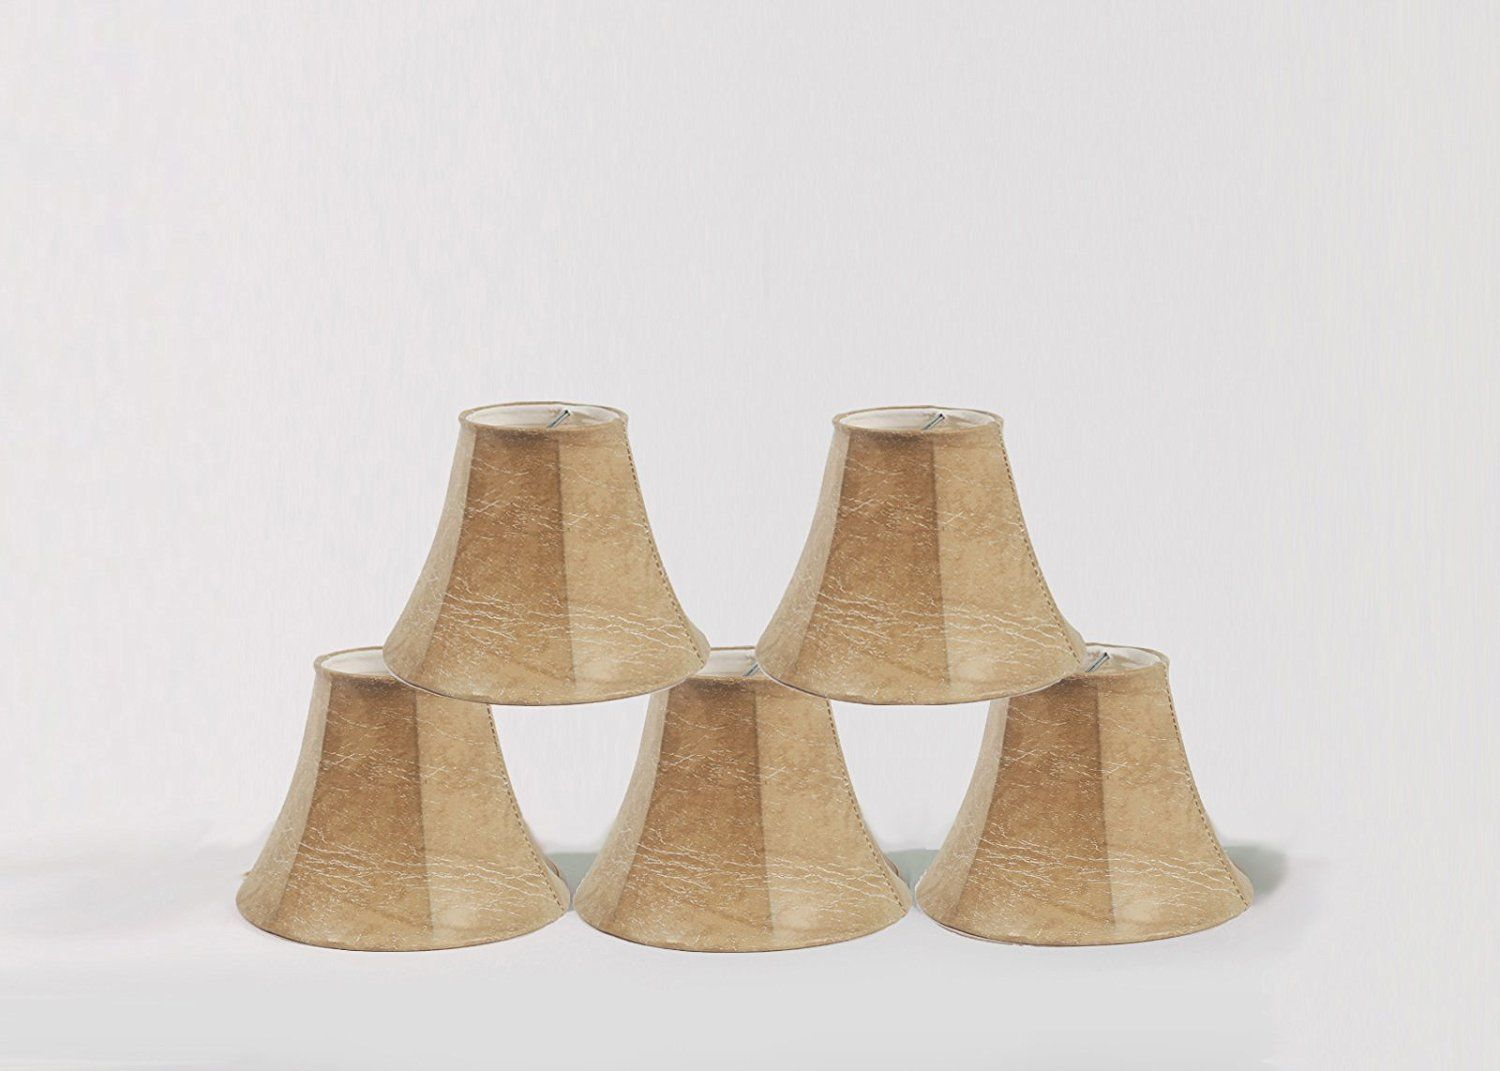 Urbanest 1100086b set of 5 chandelier lamp shade 6 inch bell faux urbanest set of 5 chandelier lamp shade bell faux leather clip on special offer just for you arubaitofo Choice Image